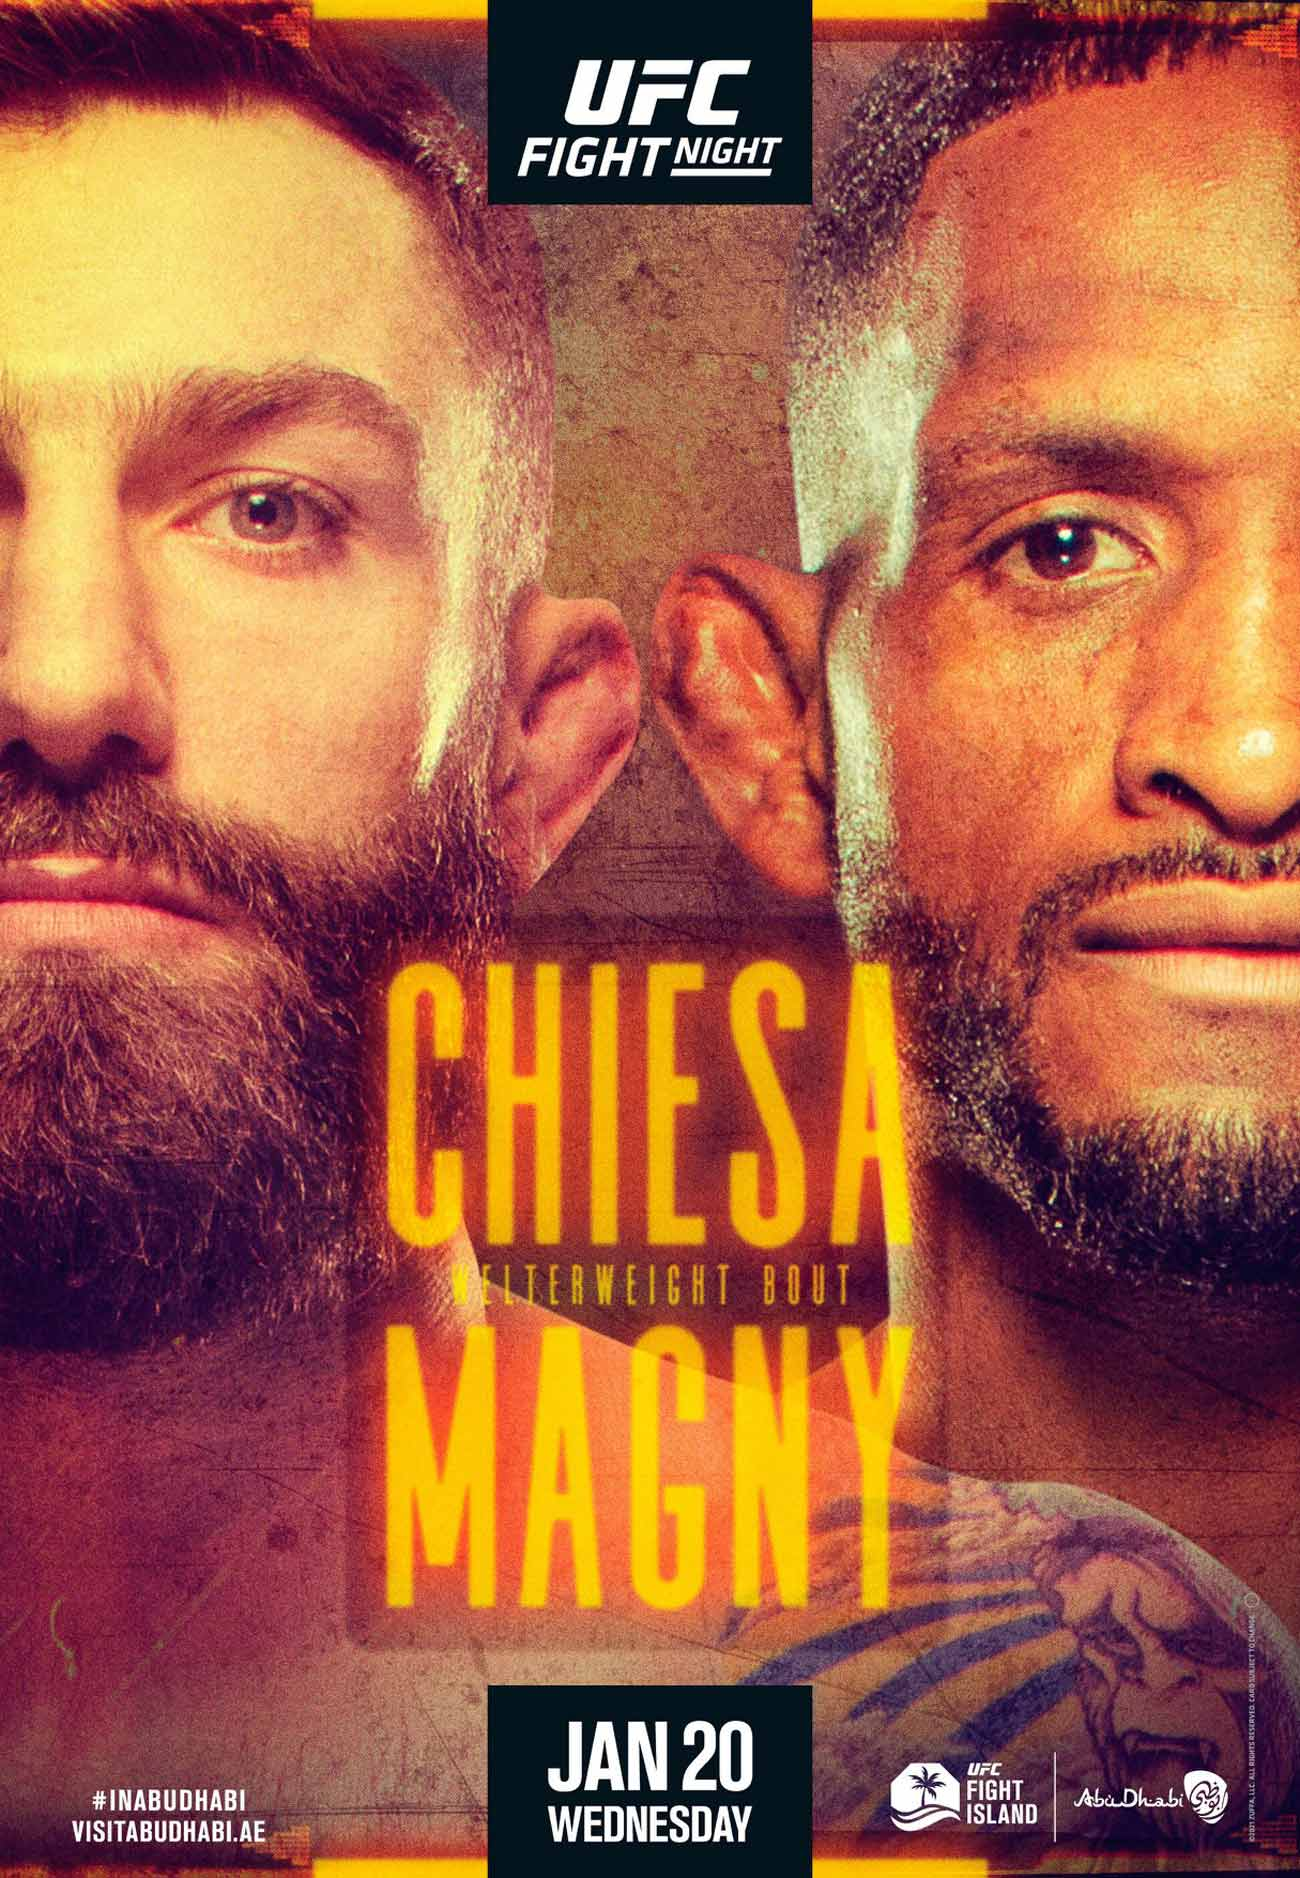 Poster of Ufc on Espn 20: Chiesa vs Magny